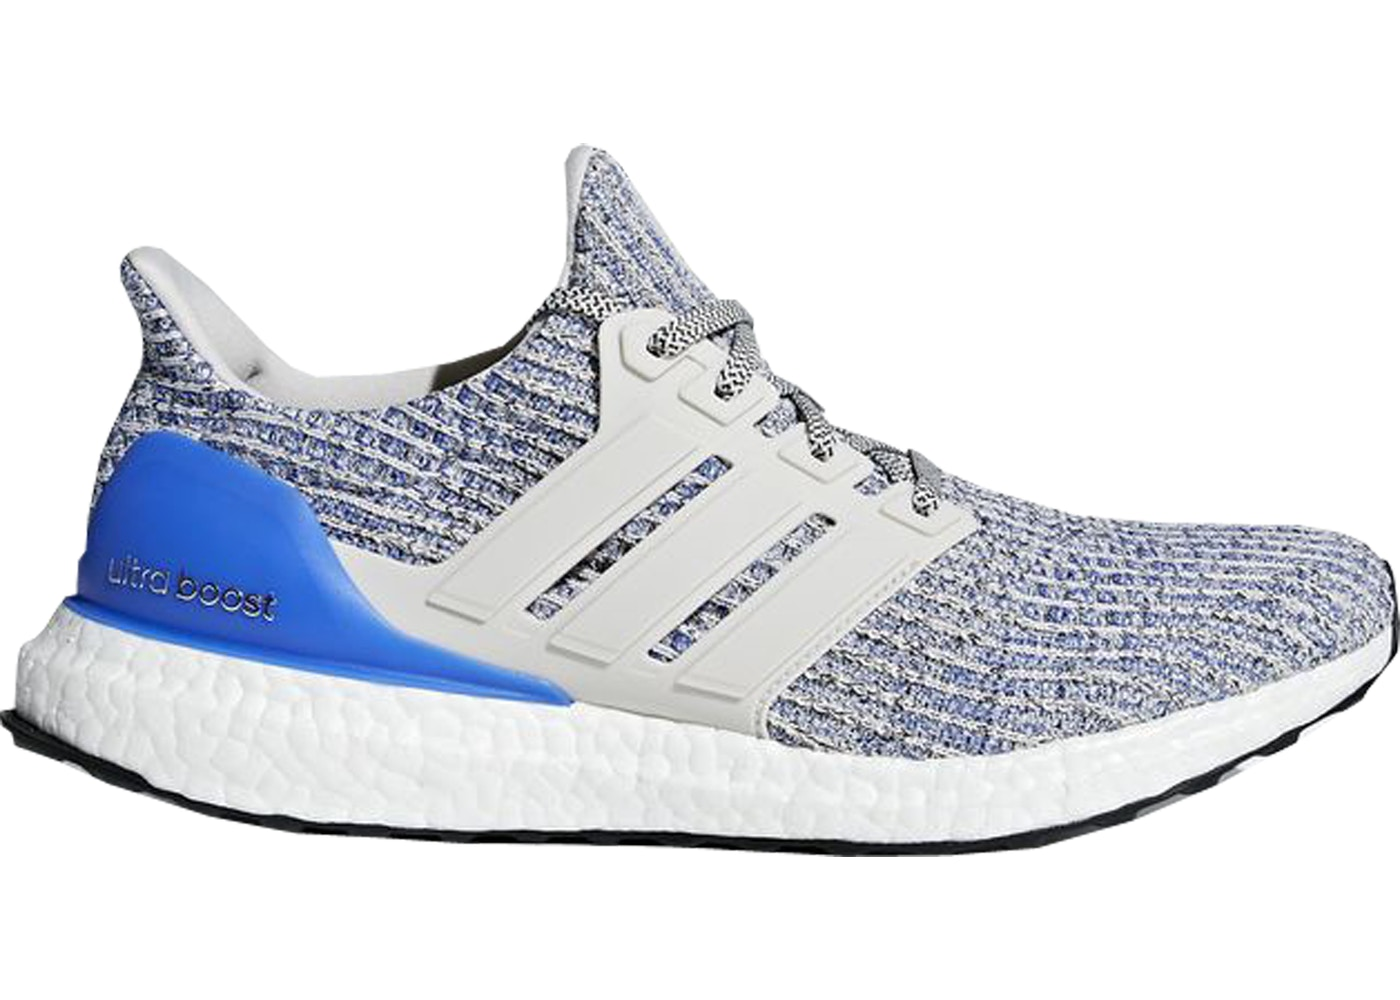 db66da0715db4 adidas Ultra Boost 4.0 White Royal - CP9249